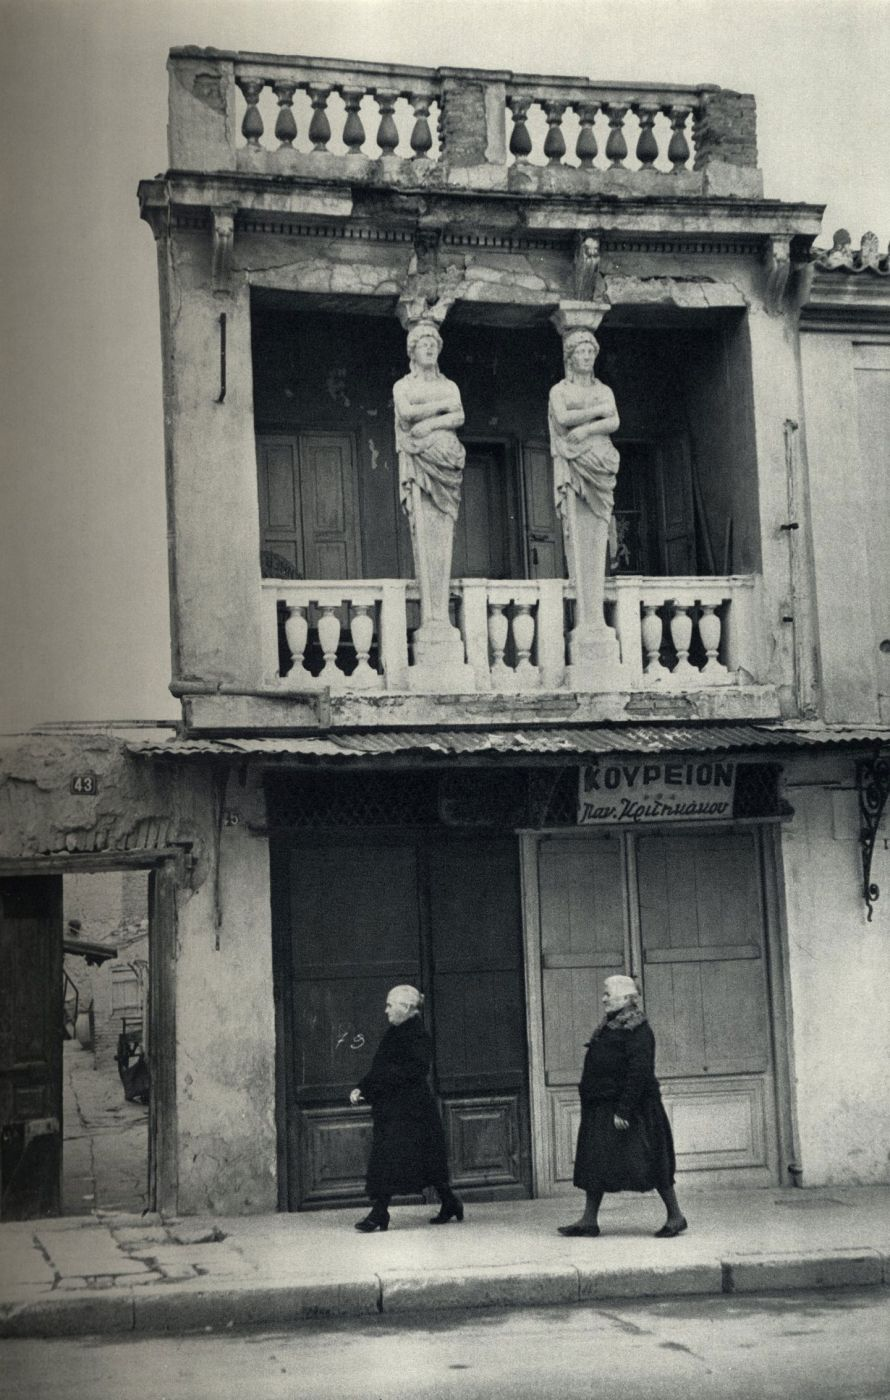 Henri Cartier-Bresson: Les Européens (French edition of The Europeans)